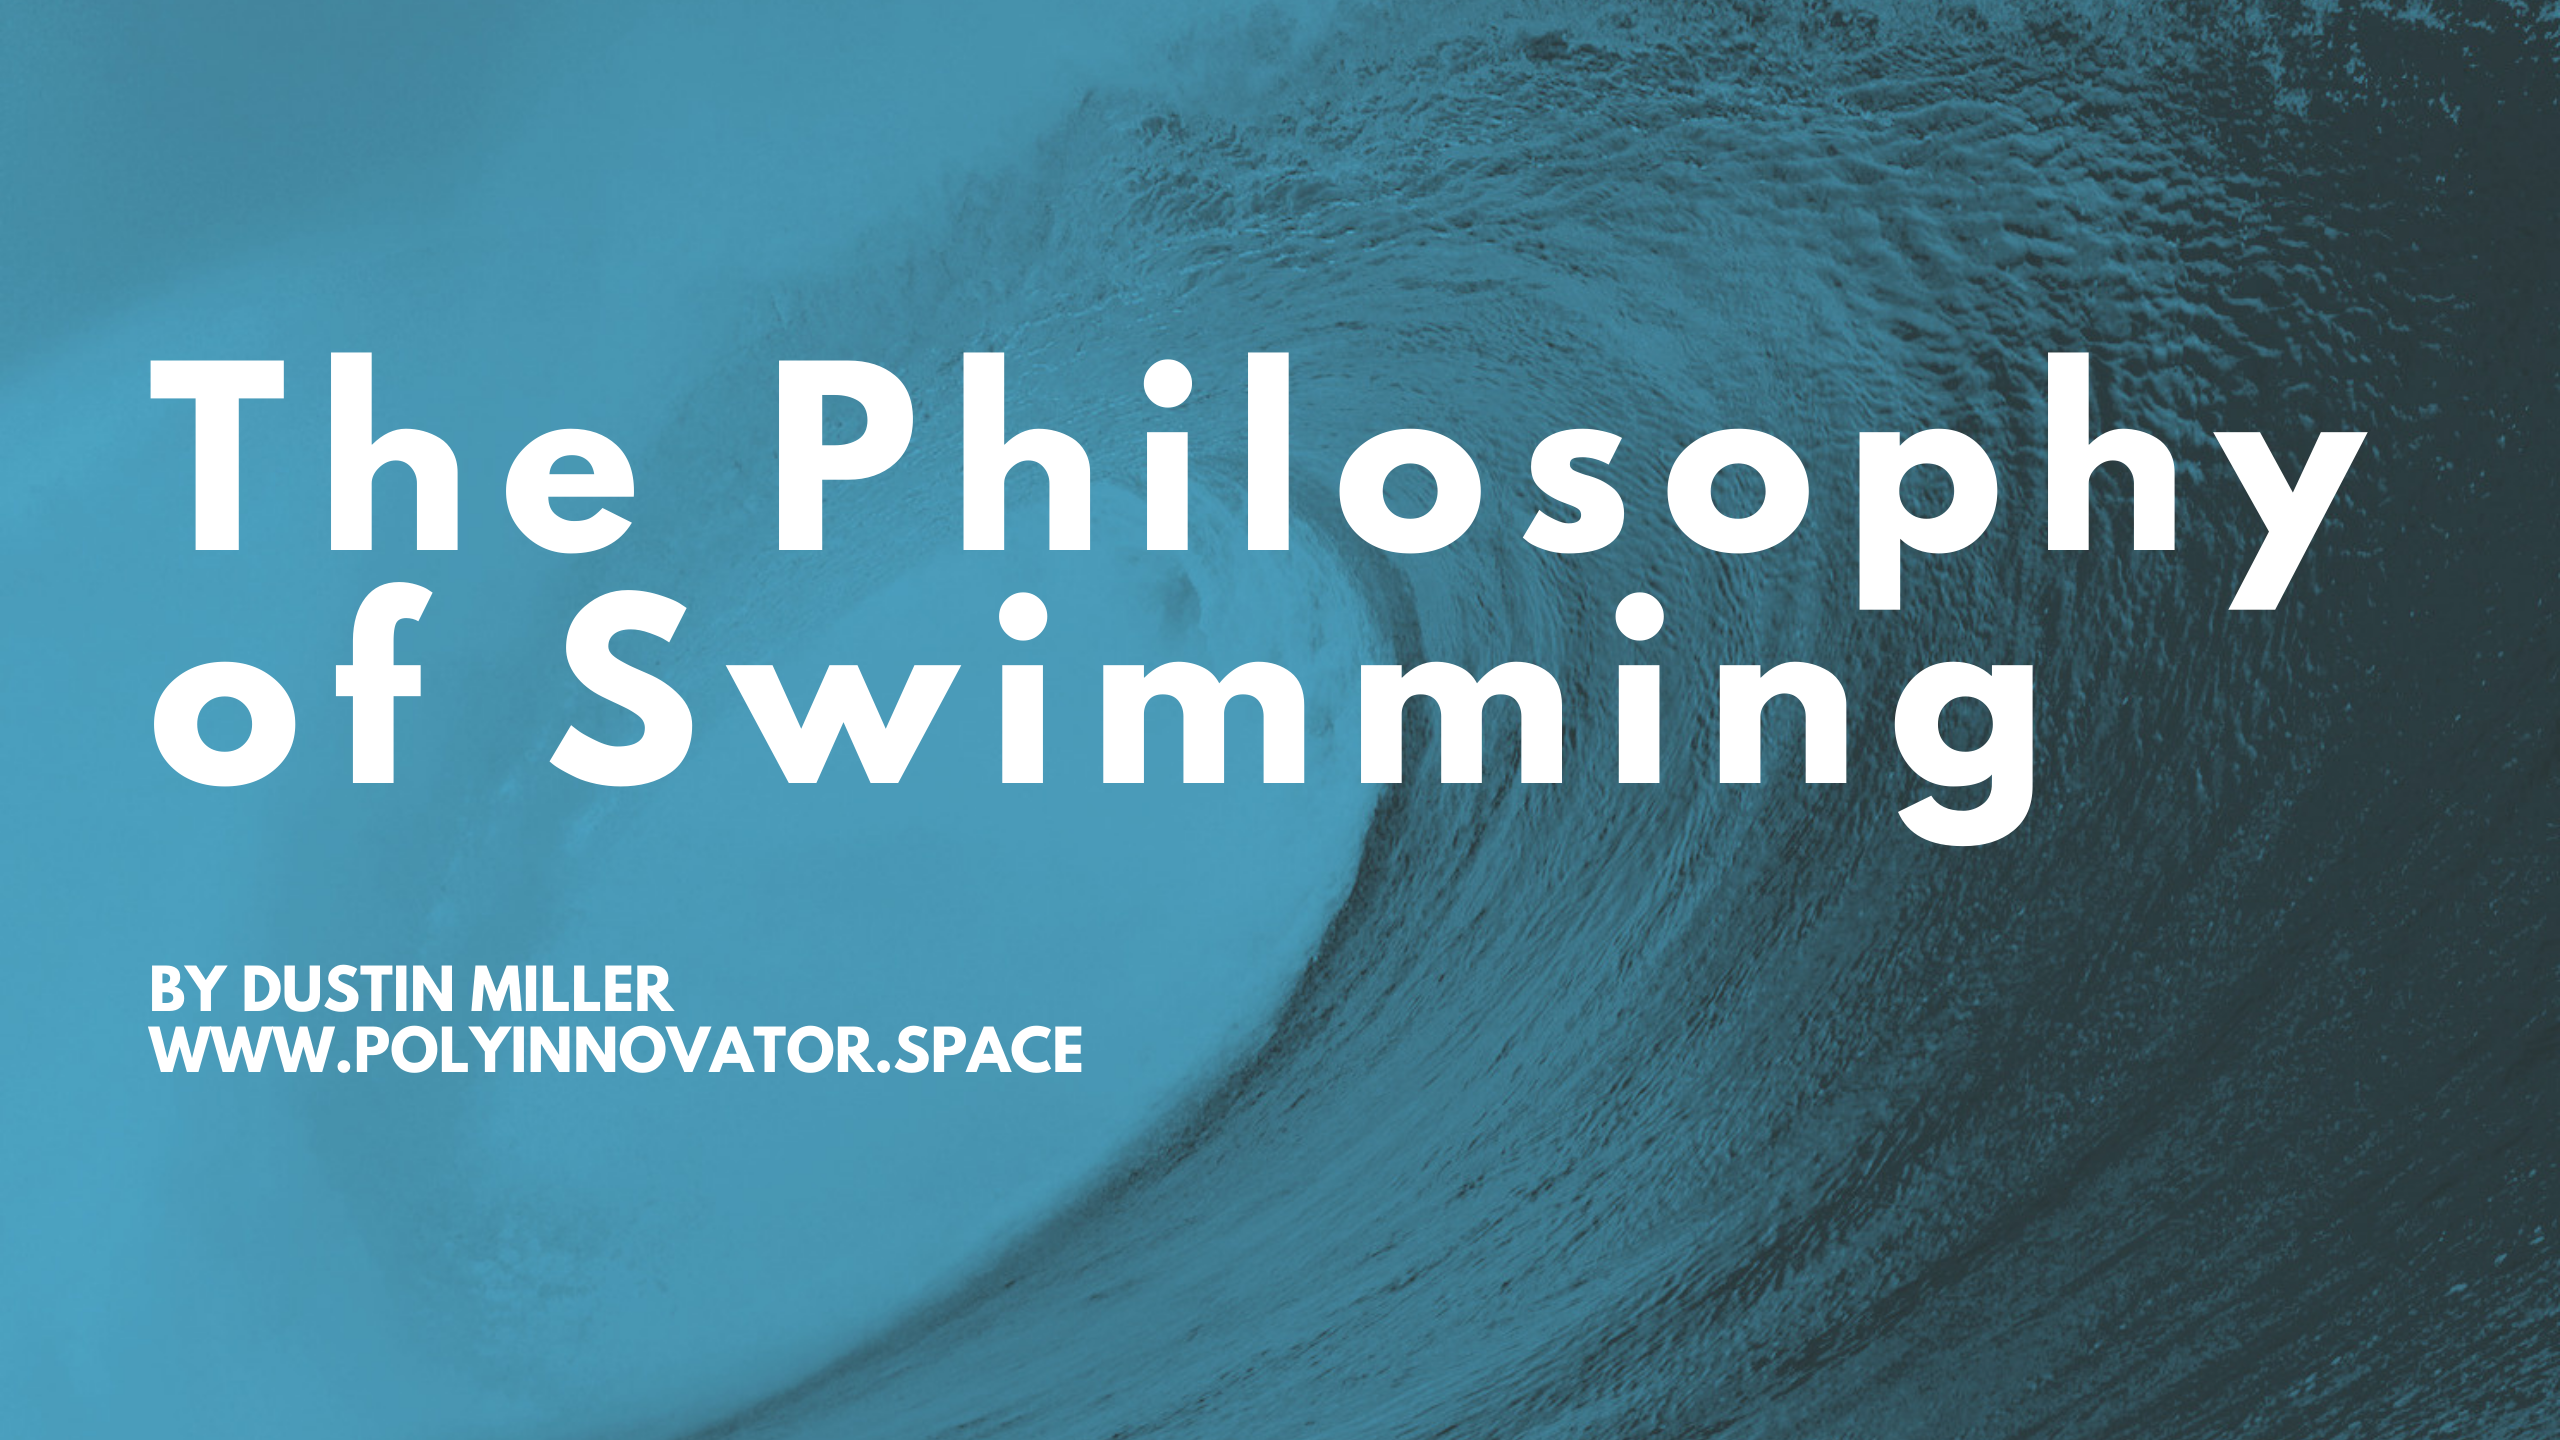 The Philosophy of Swimming